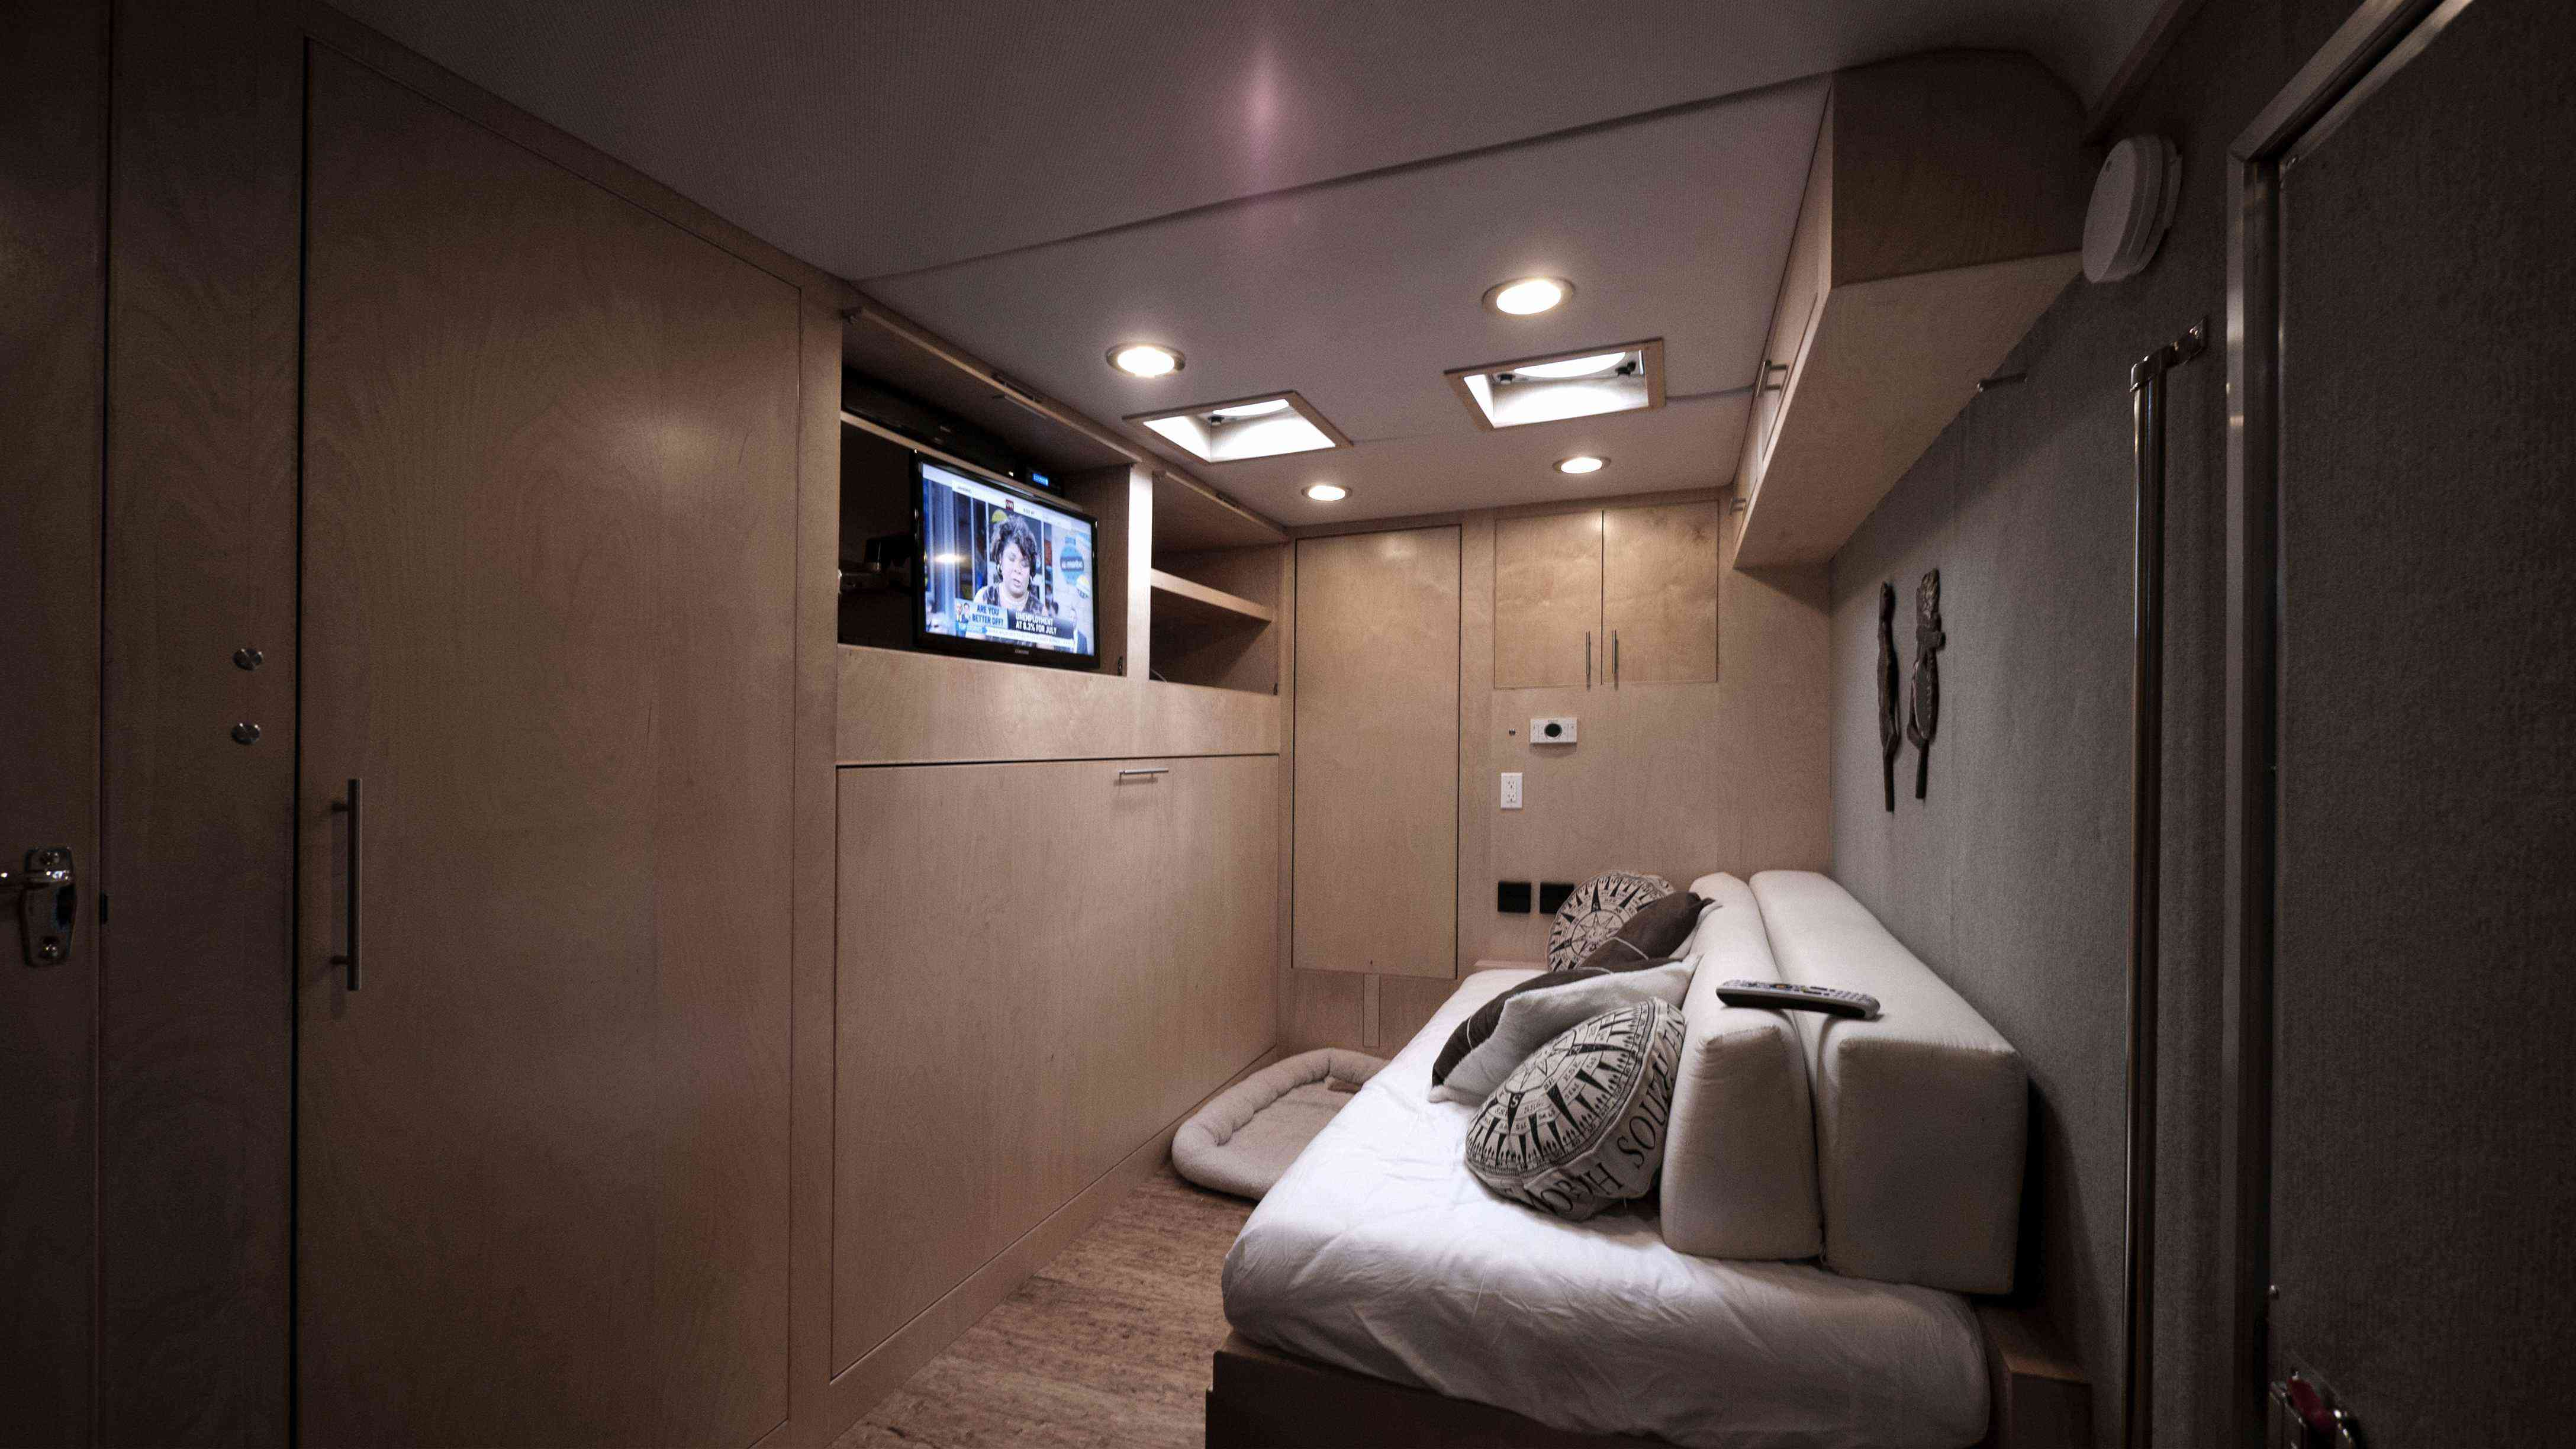 White couch in the beige interior of a trailer